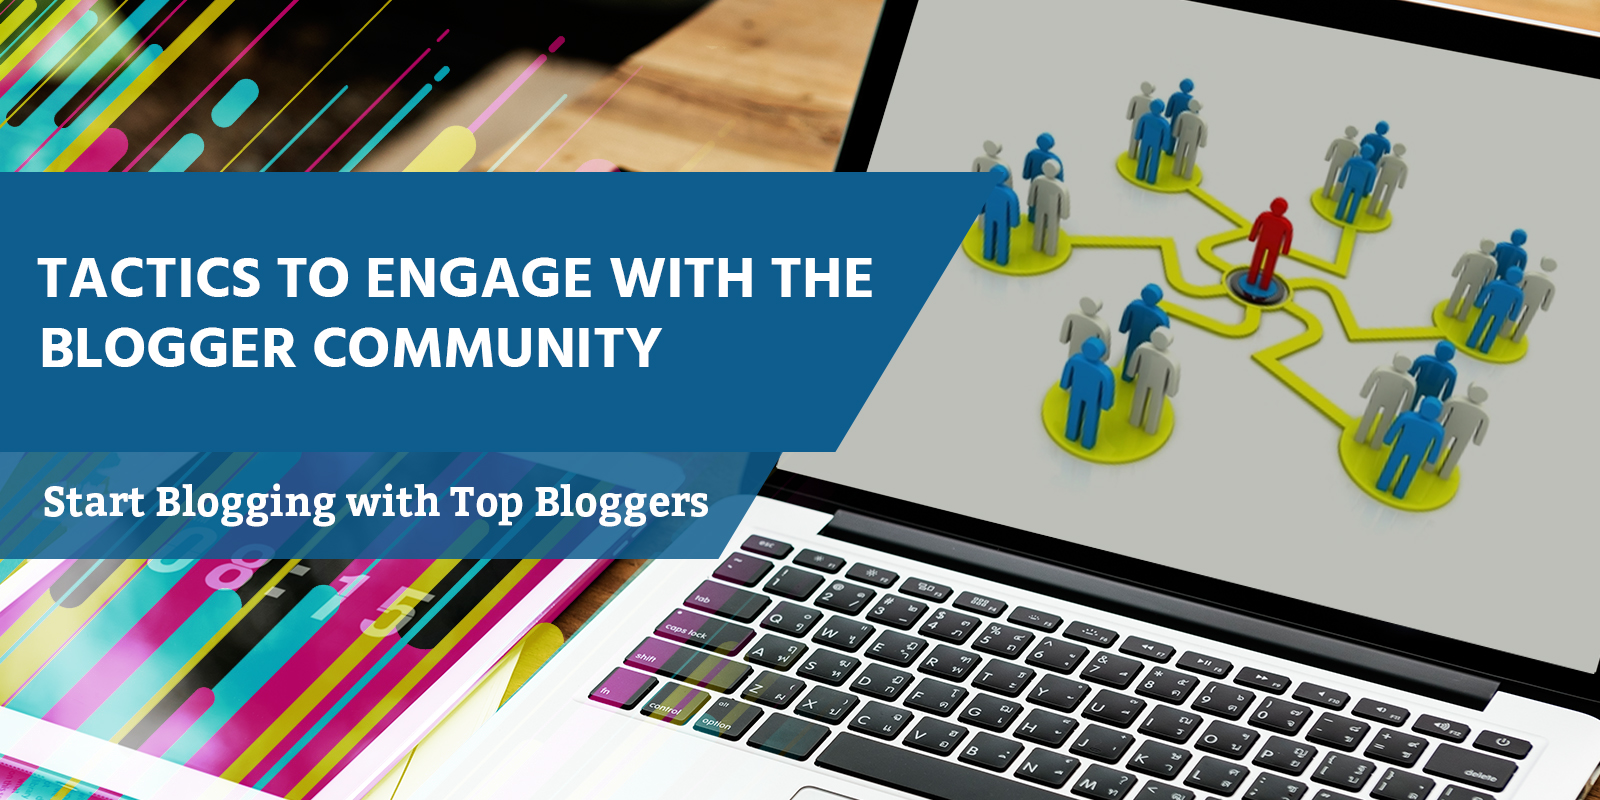 Top-notch tactics for brands to engage with the blogger community